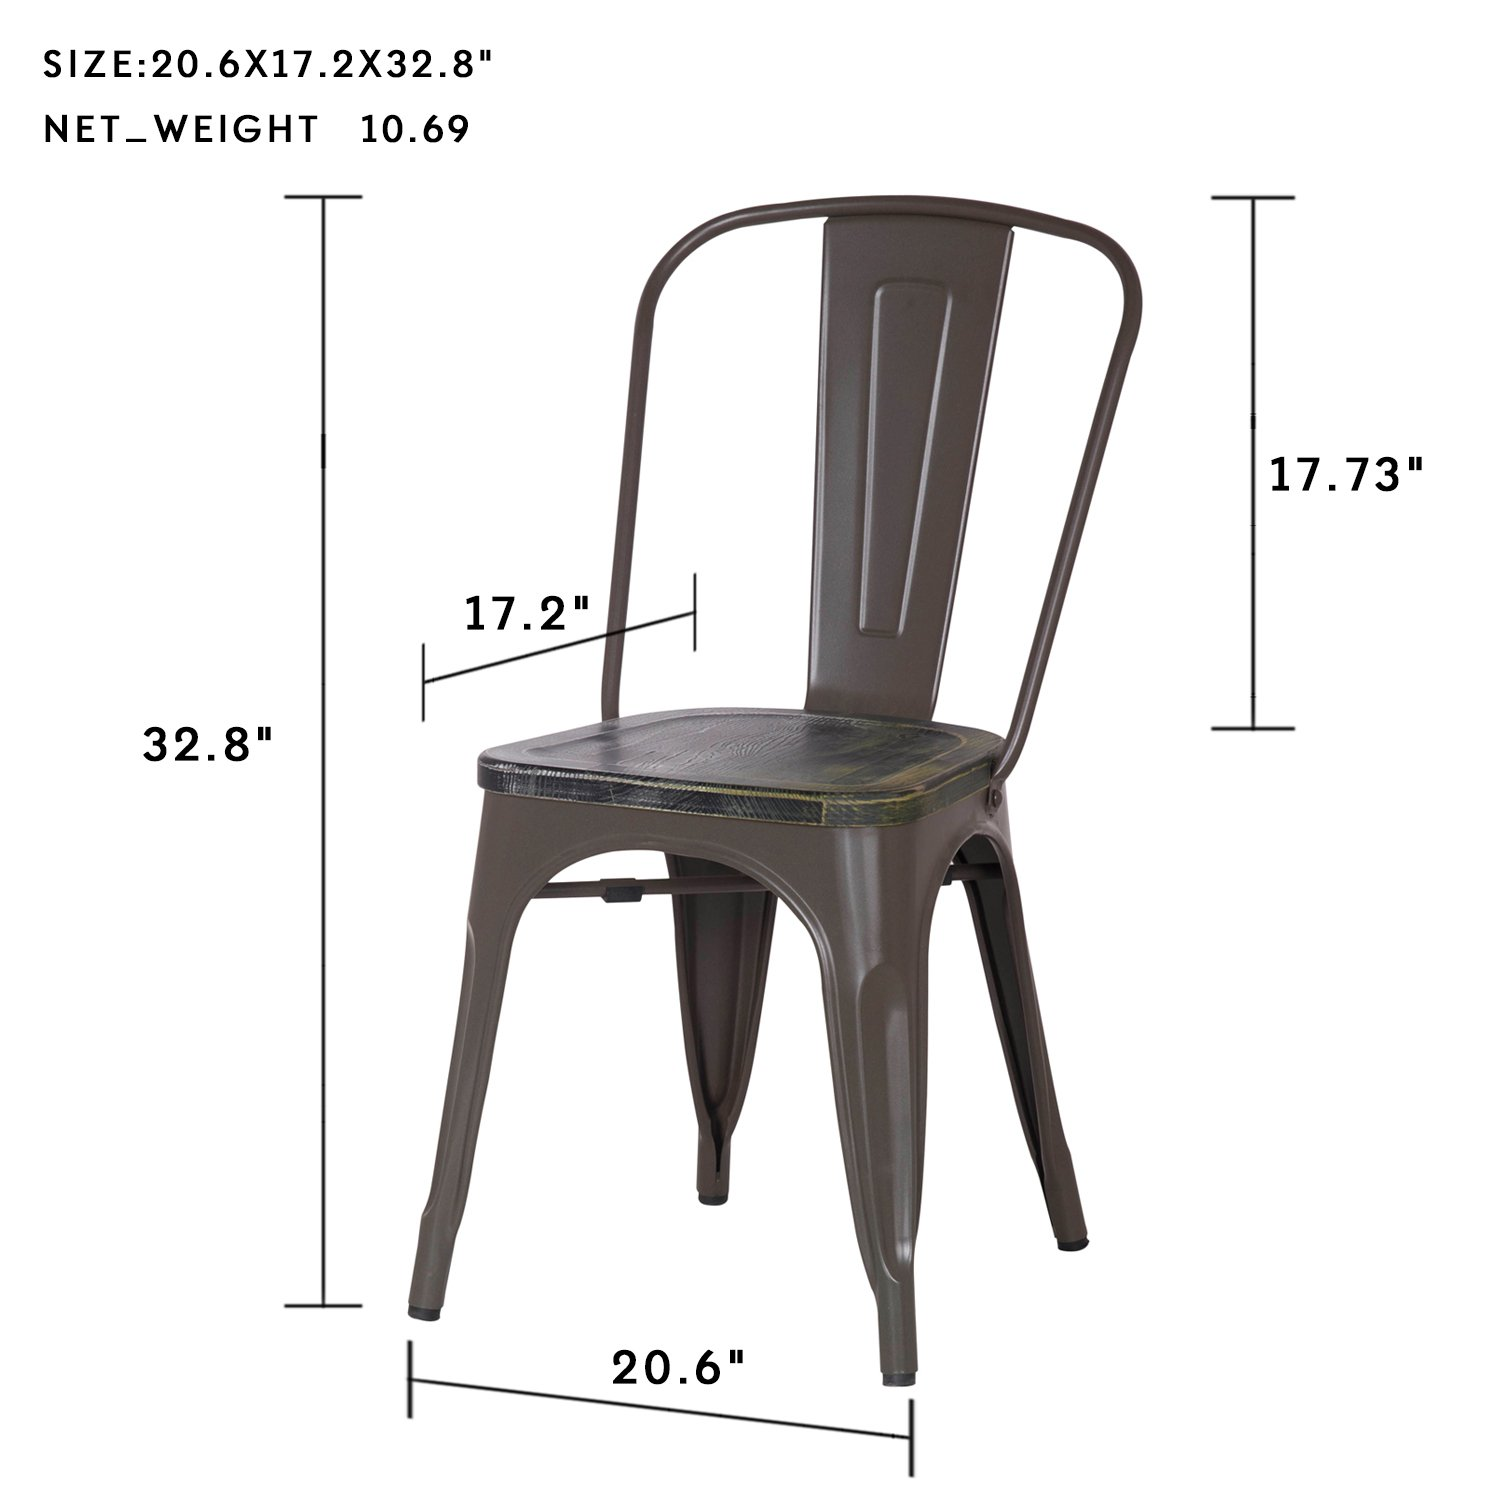 Amazon com joveco stackable distressed metal dining chairs with wooden seat set of 2 chairs